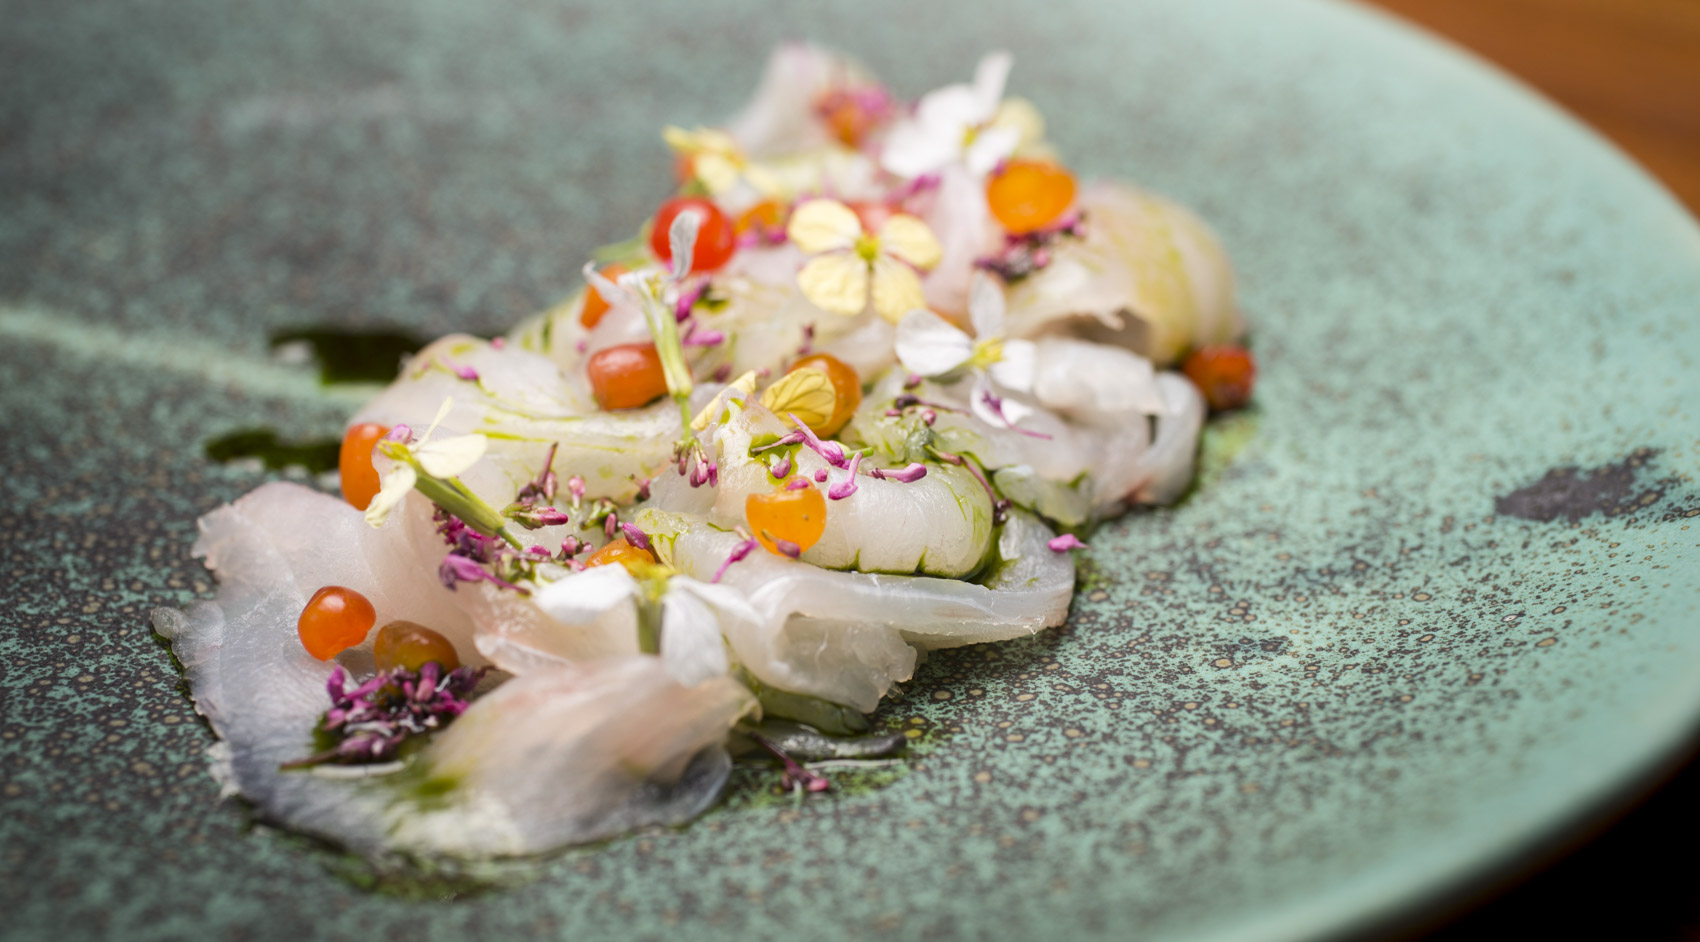 Coorong mulloway with native cherries and sea parsley, by Matthew Turner